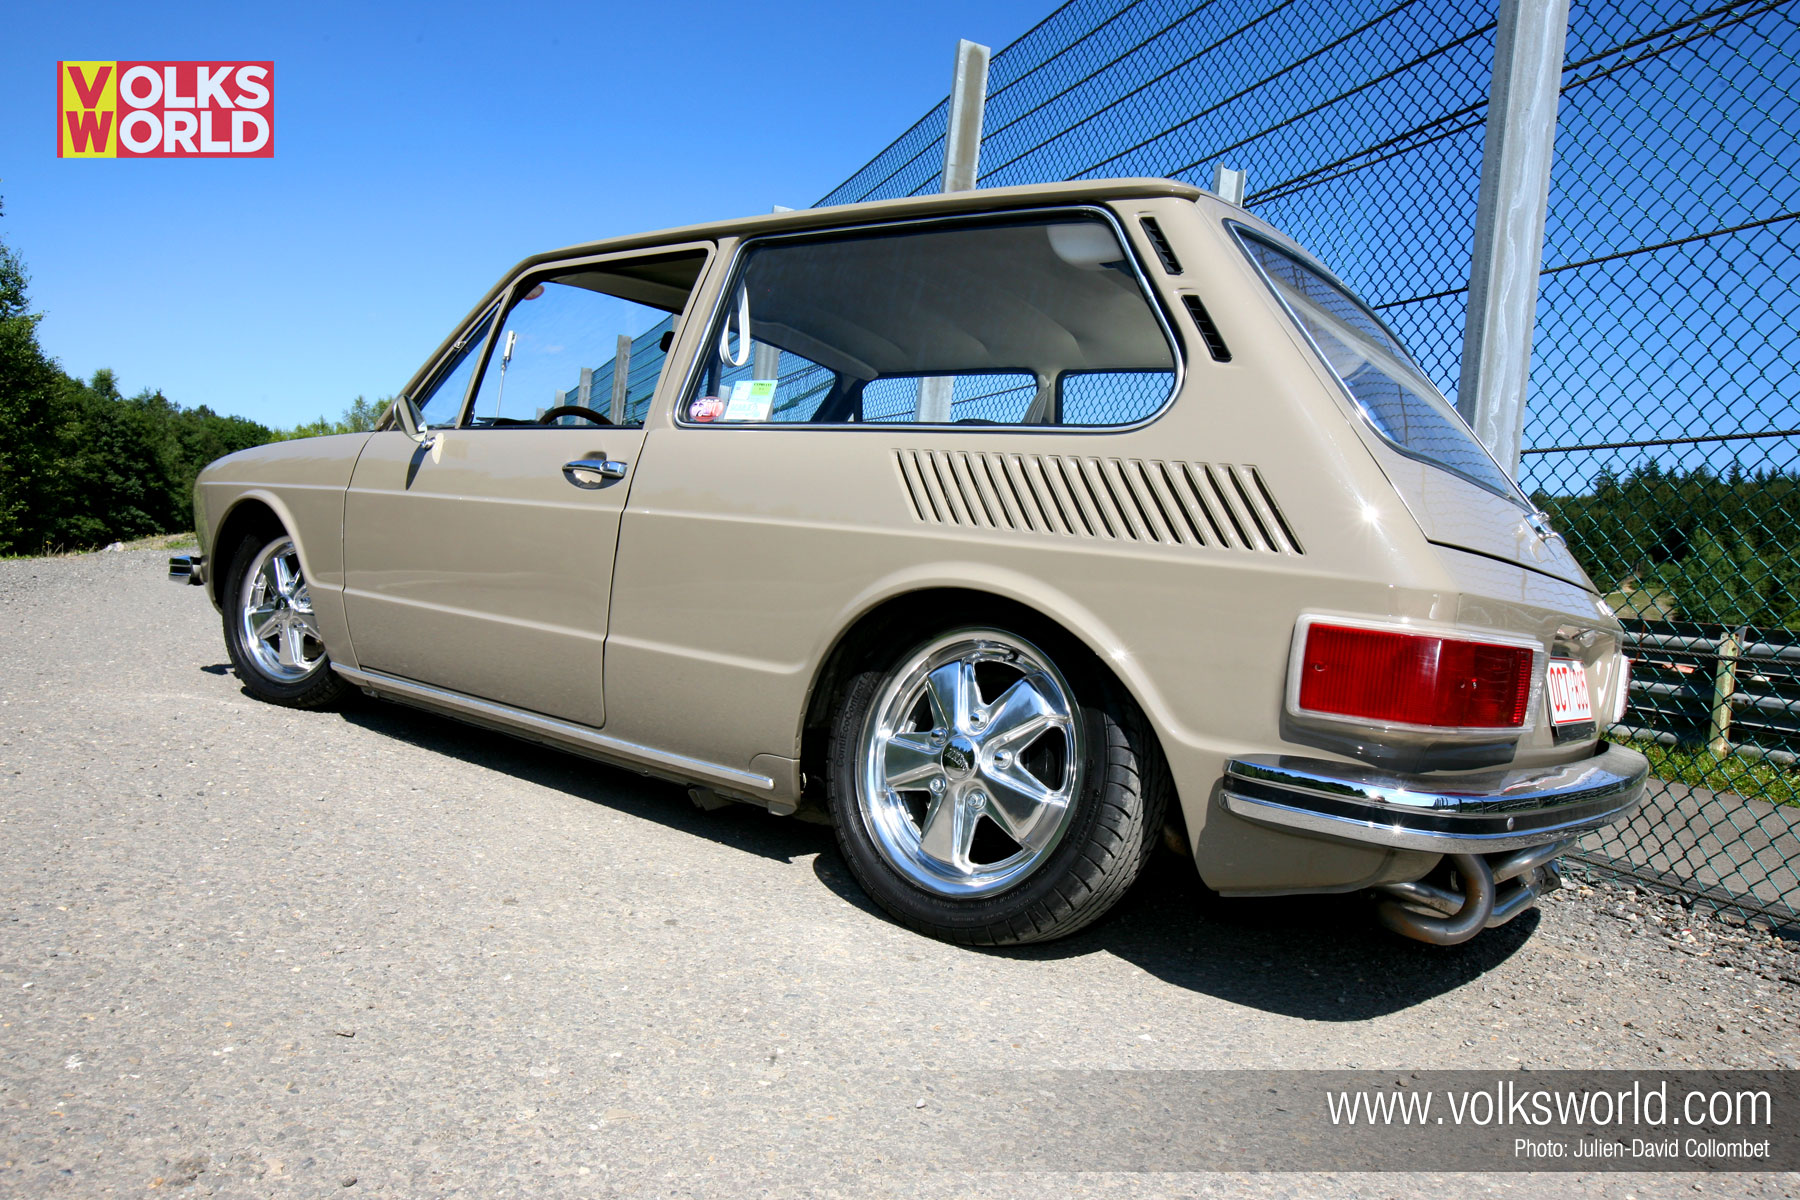 Like VolksWorld Subscribe to the magazine for more great features 1800x1200